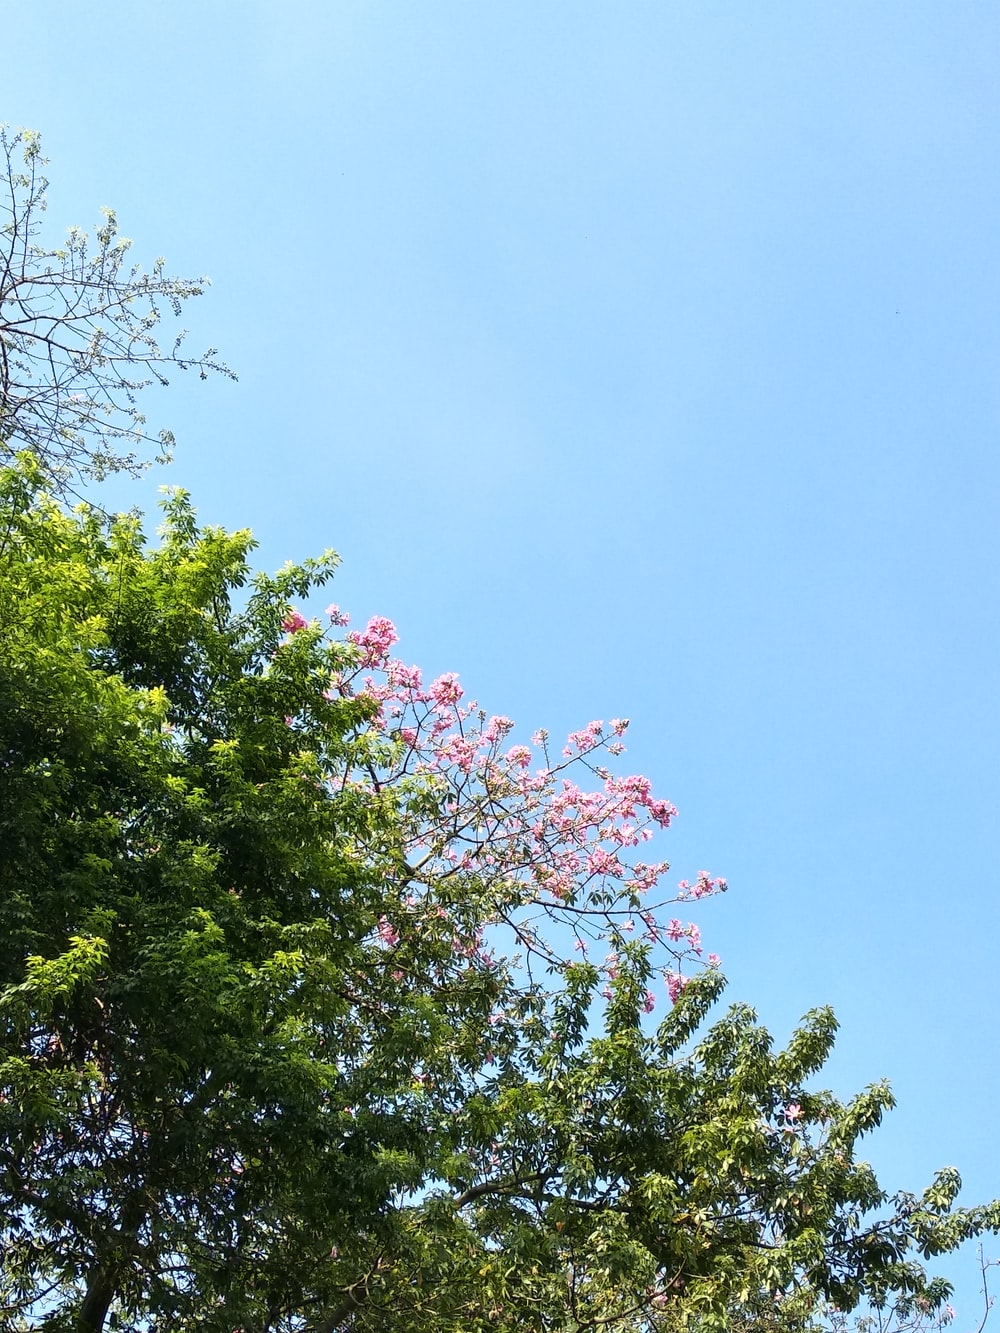 green-leafed pink-petaled flowering tree under calm blue sky